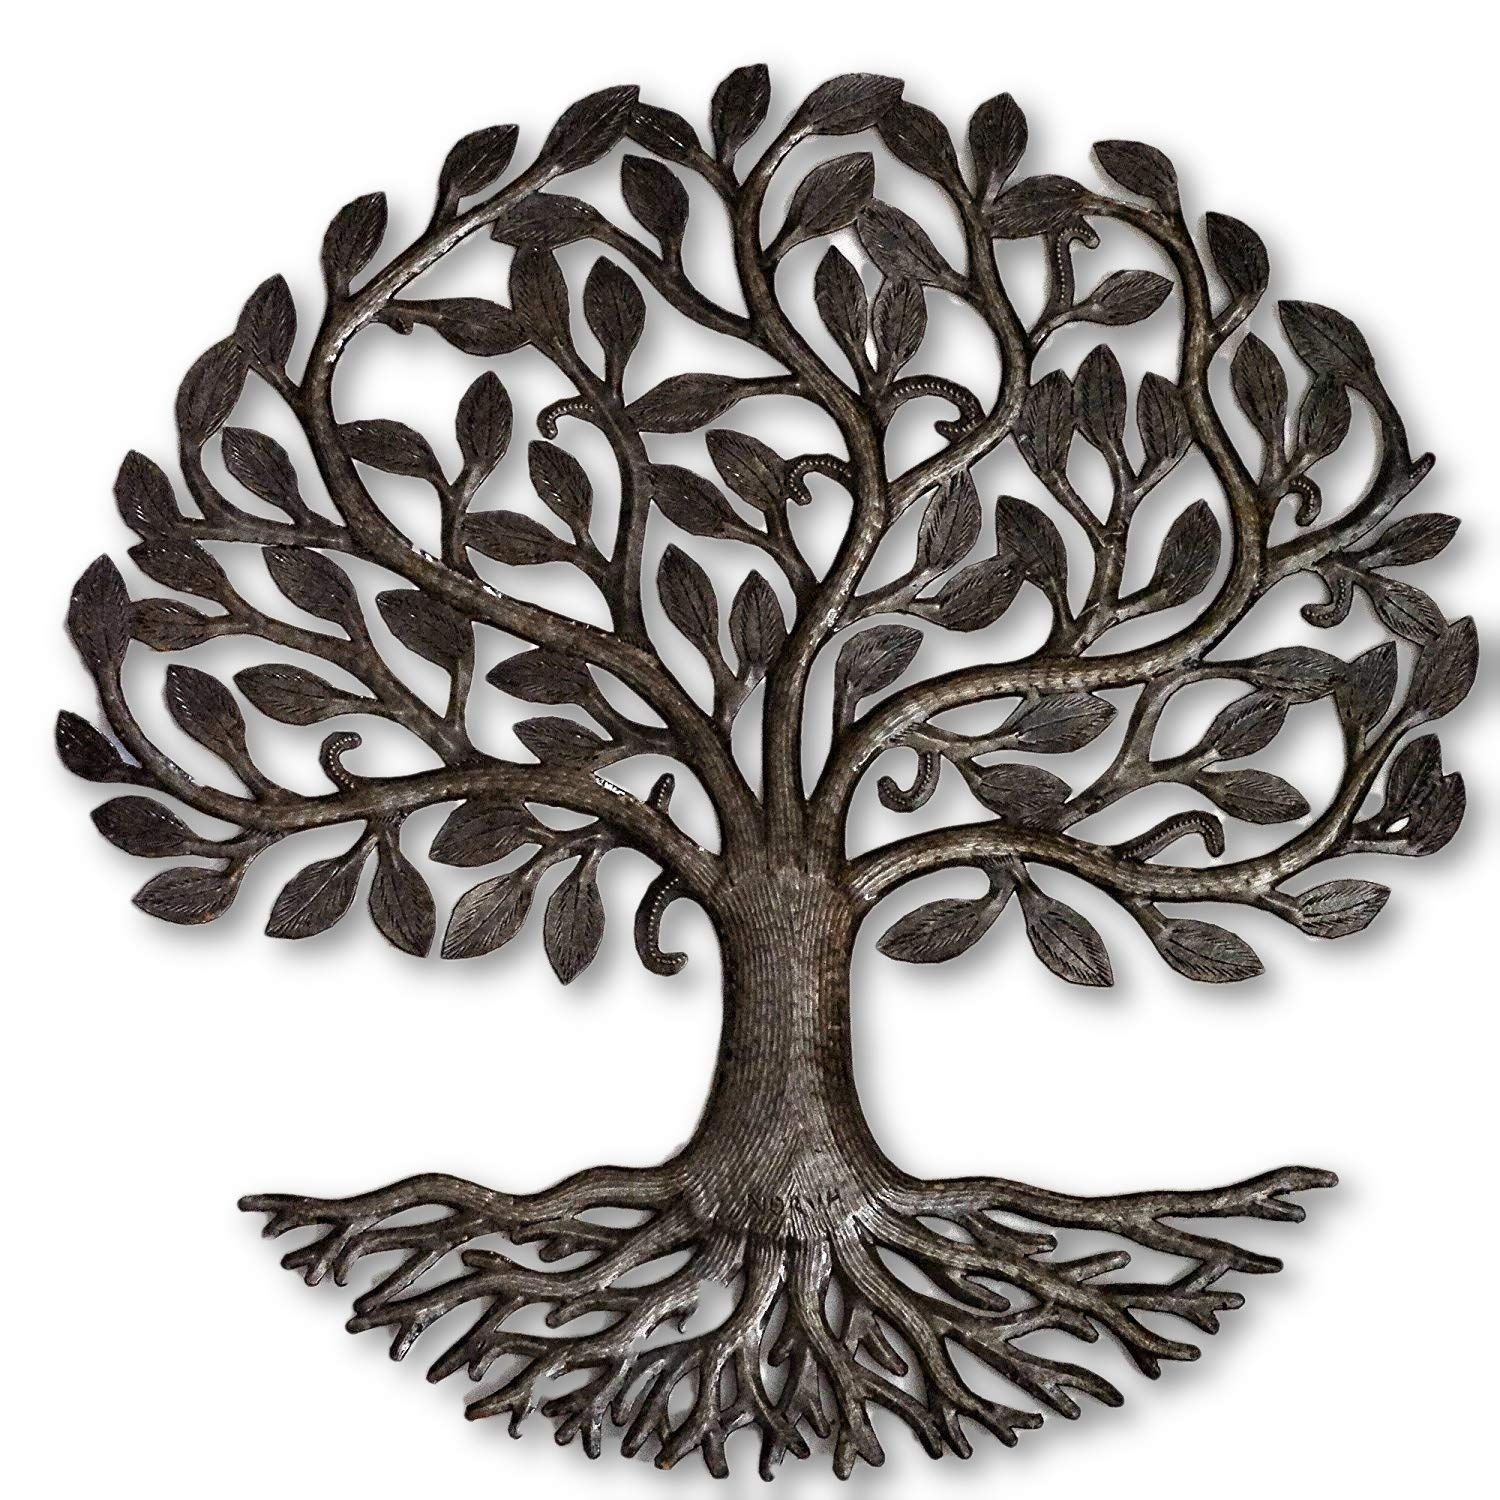 07605fa2de08 Details about Metal Tree of Life with Roots, Wall Art Hanging Home Decor,  Nature Inspired 23